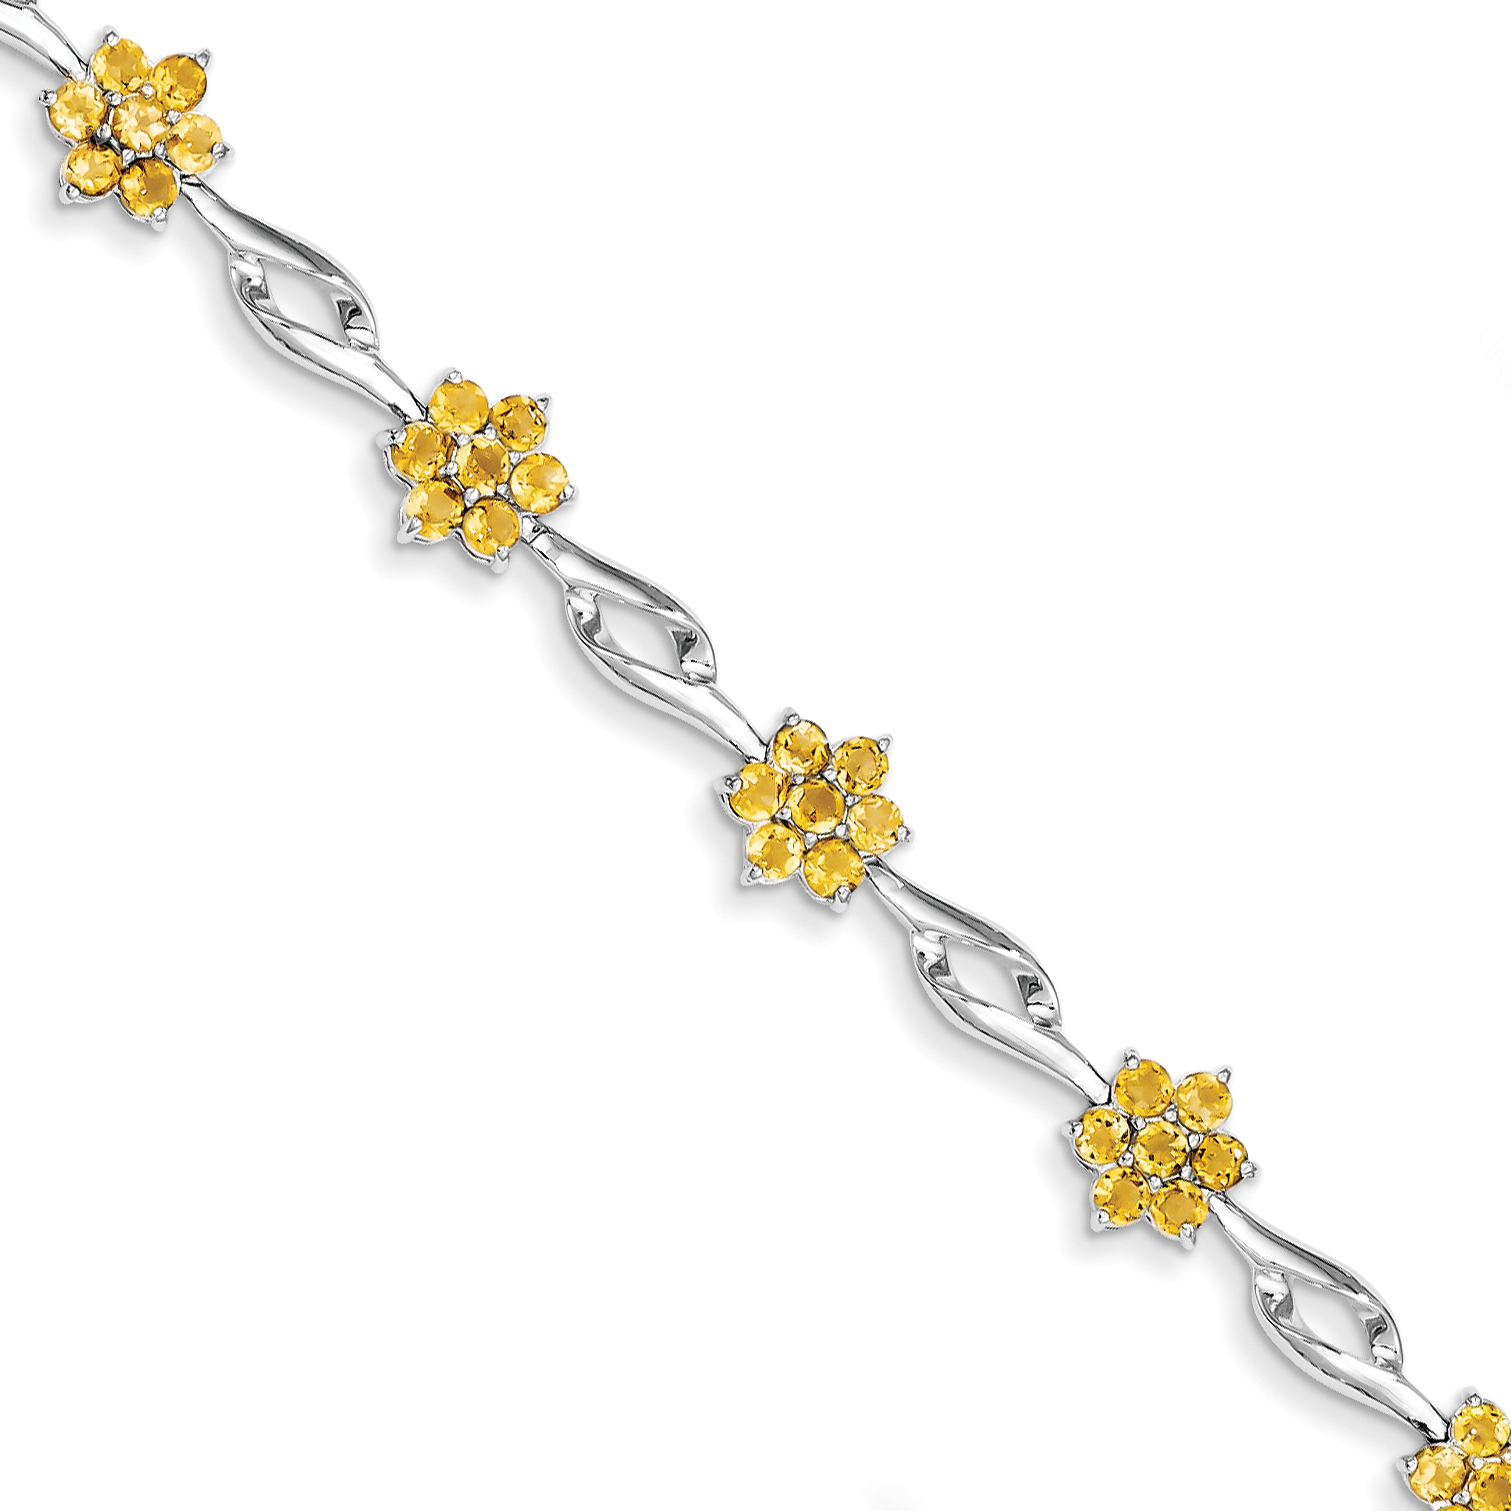 Roy Rose Jewelry Sterling Silver Citrine Bracelet ~ Length 7'' inches by